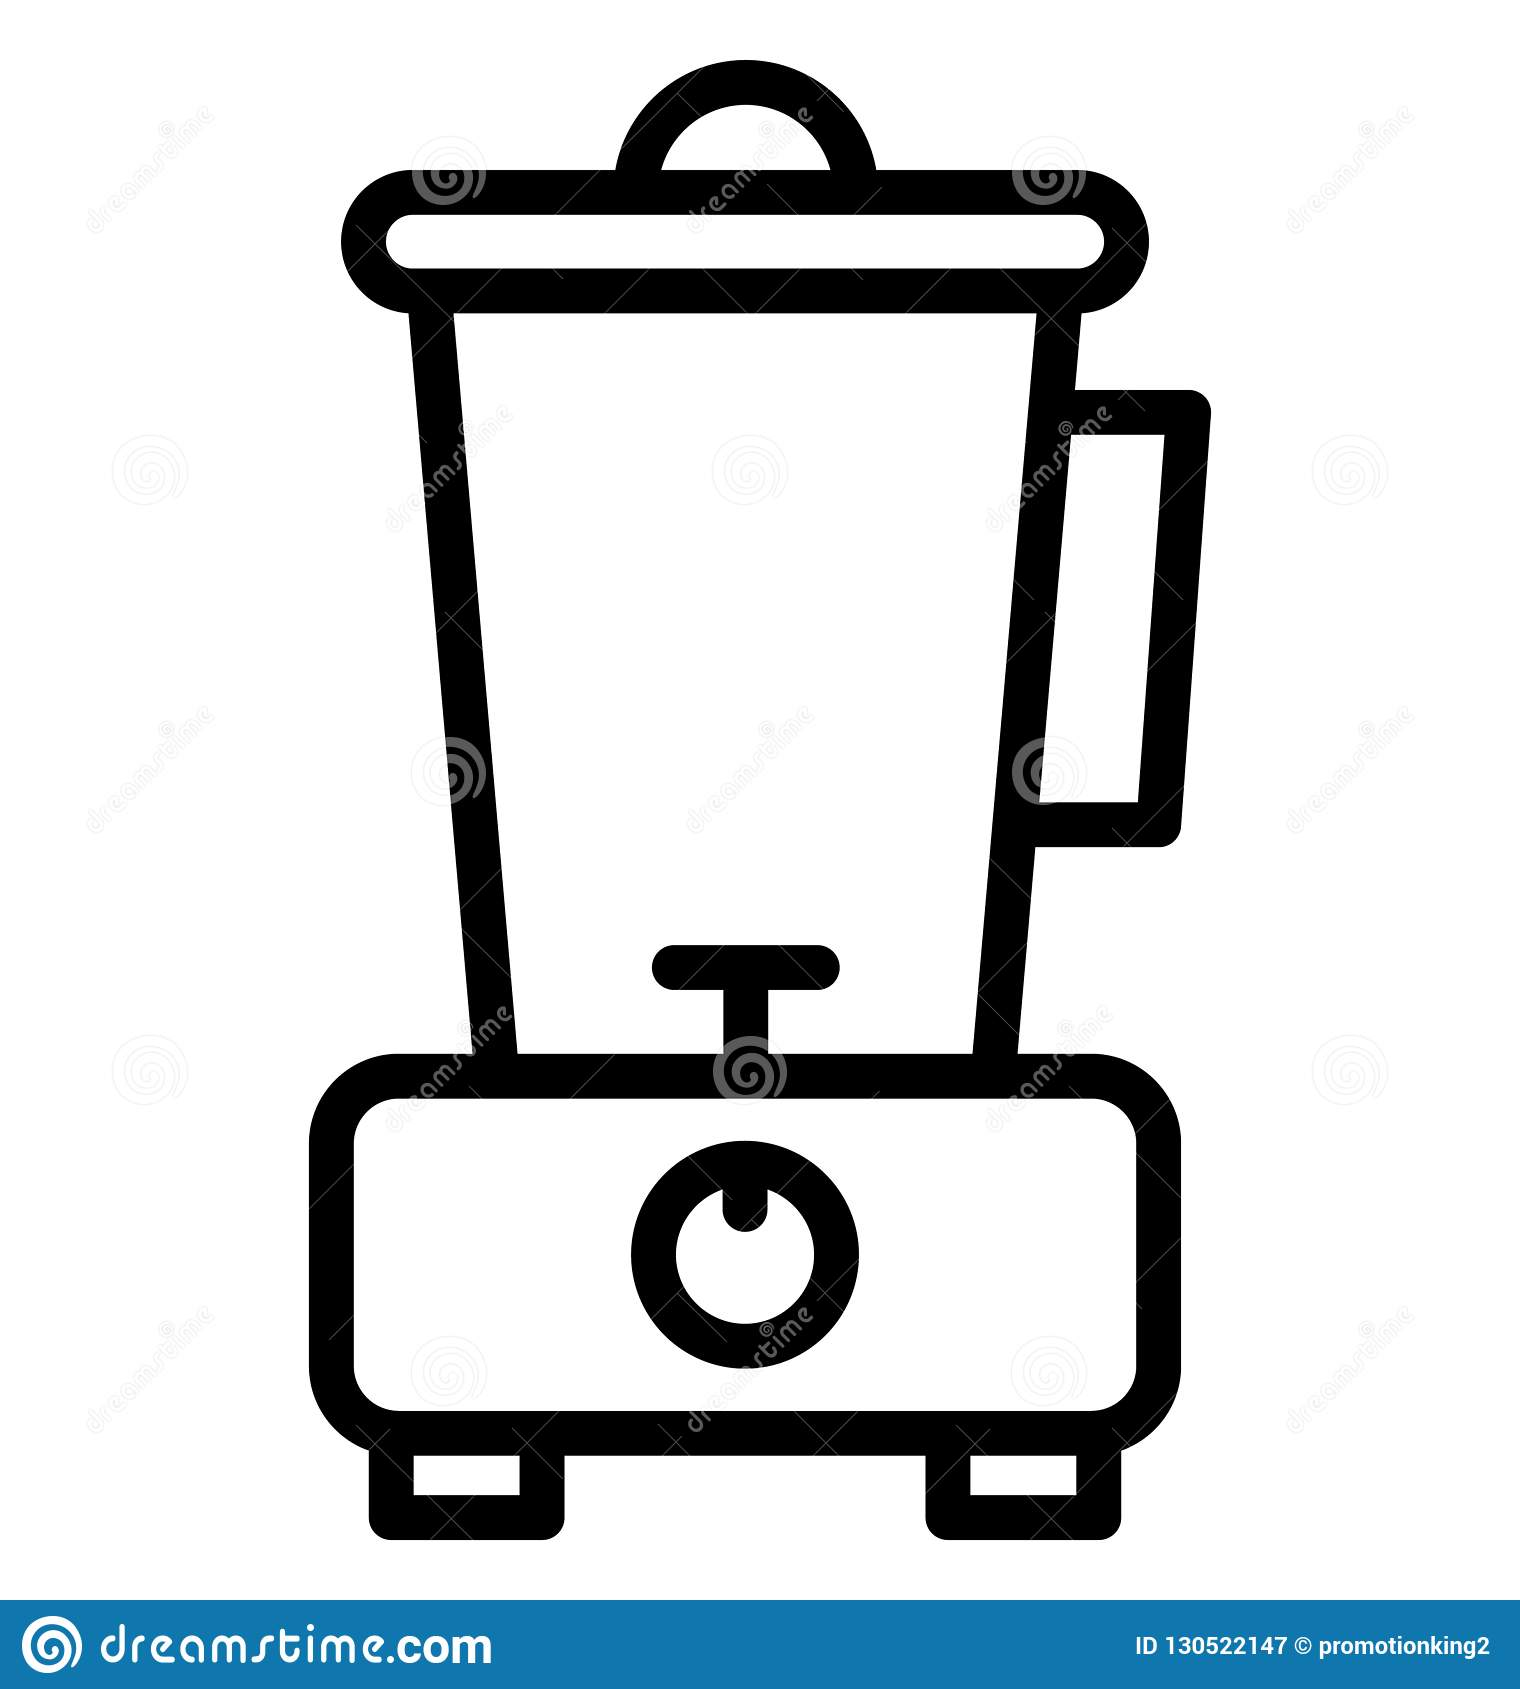 Blender, food processor Isolated Vector Icon That can be easily edited in any size or modified.